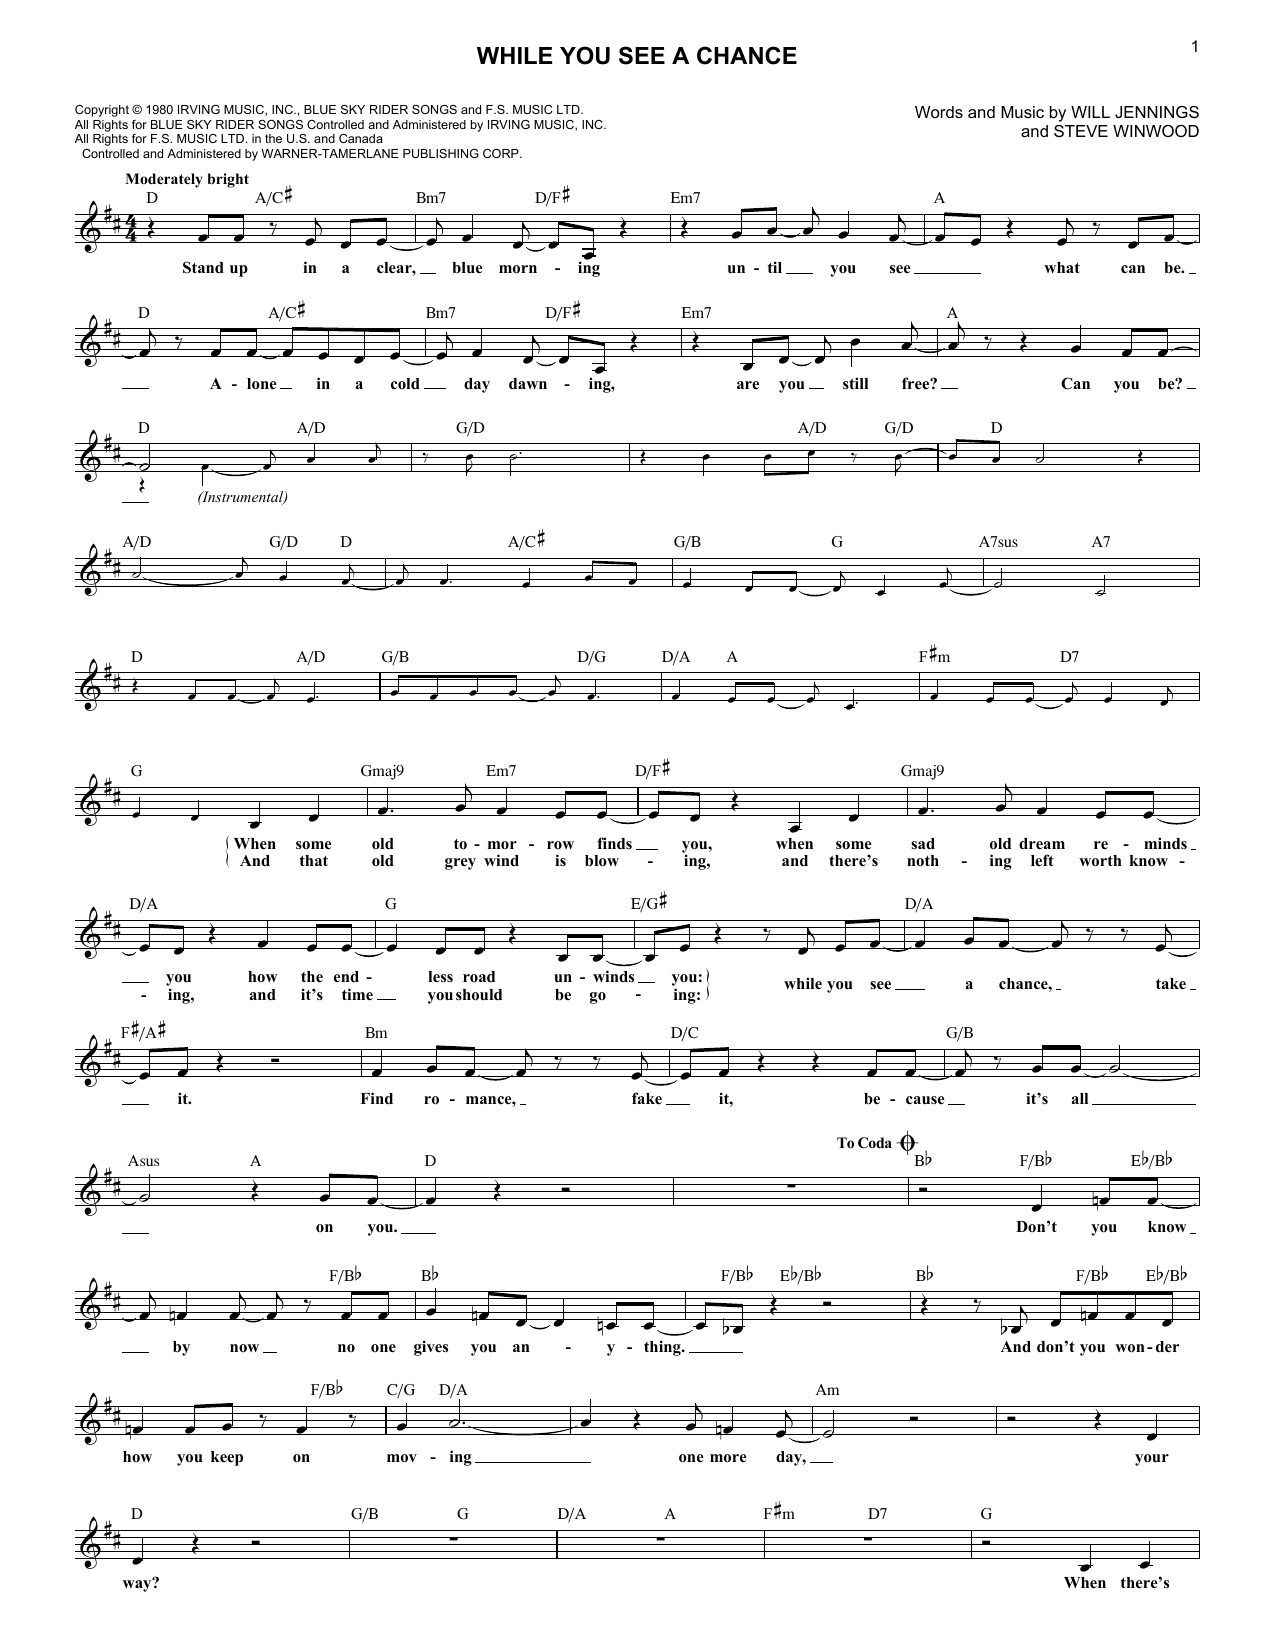 While You See A Chance (Melody Line, Lyrics & Chords)